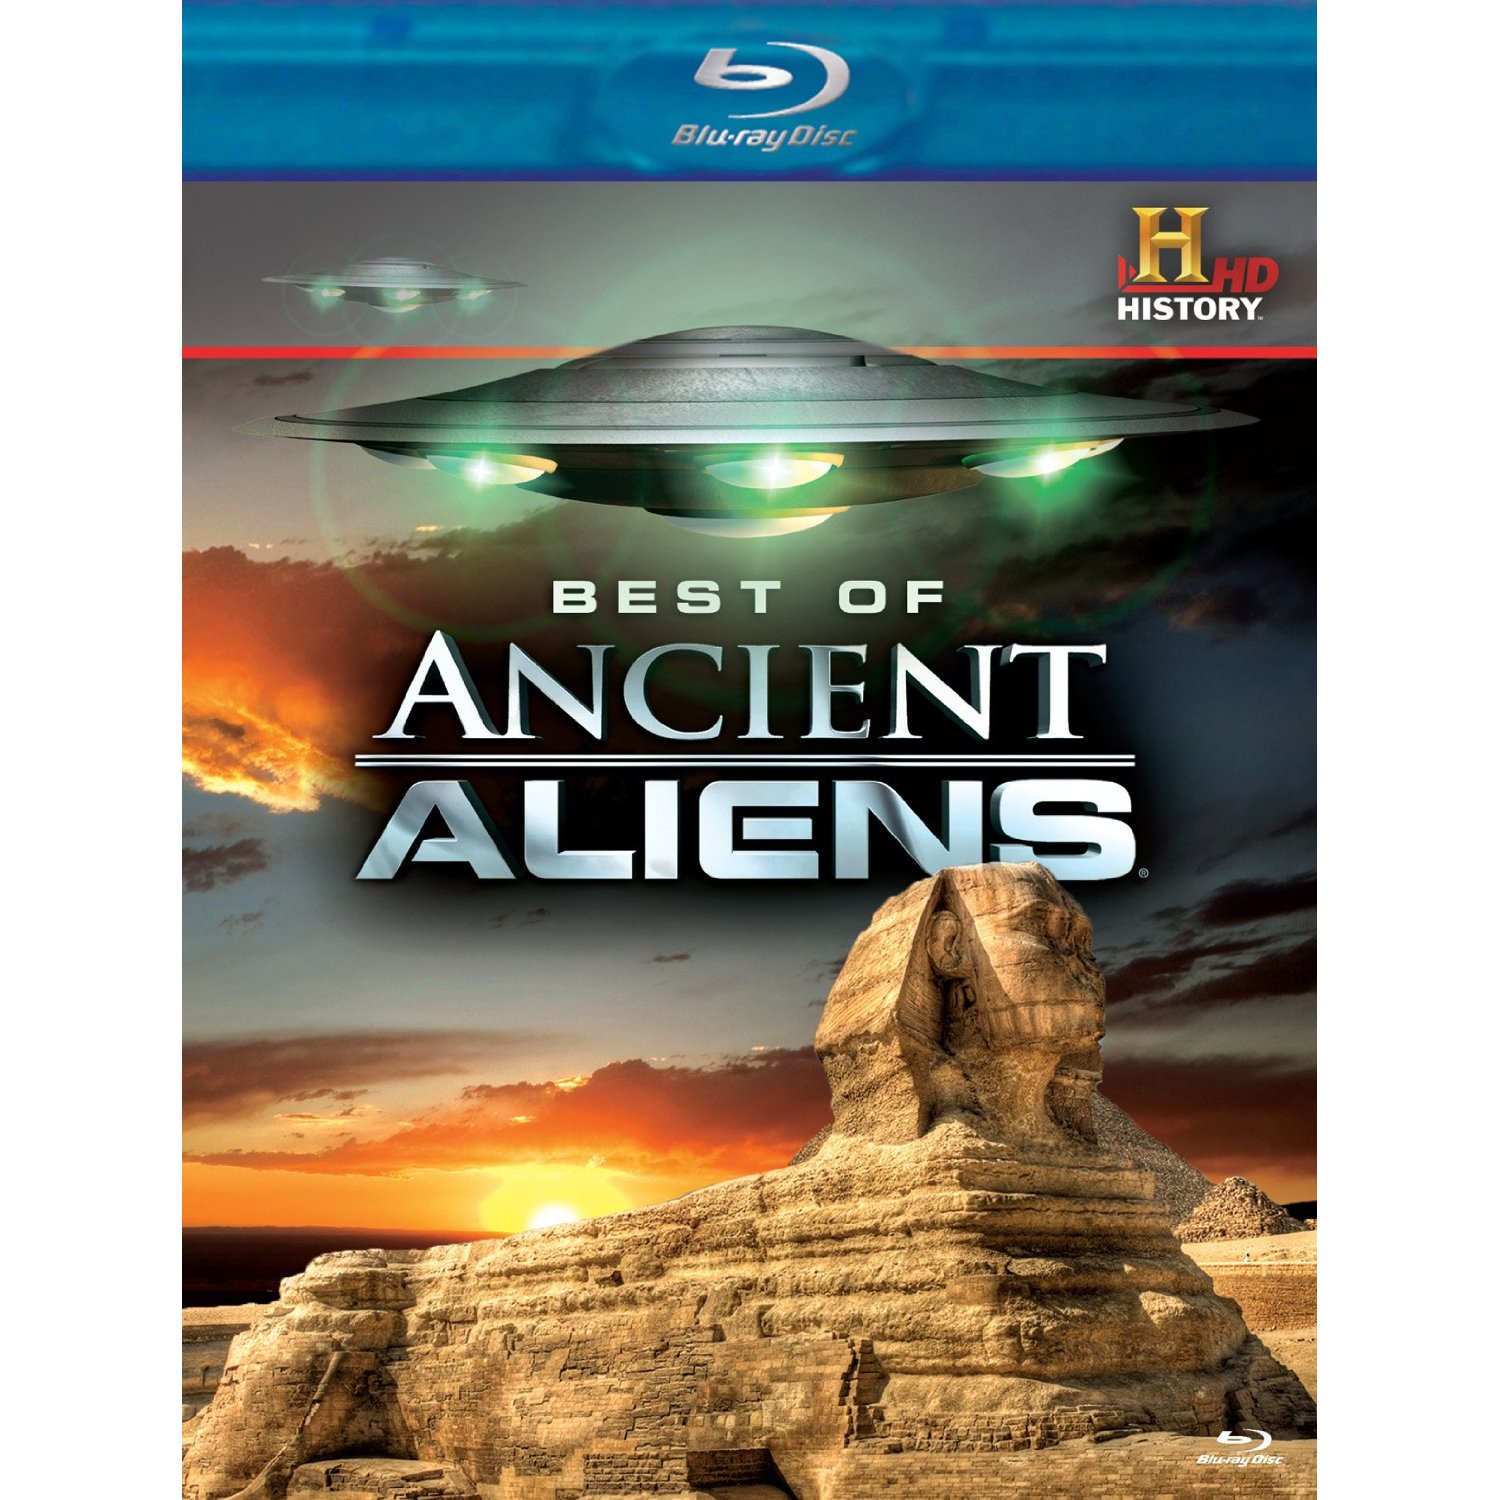 Ancient Aliens Season 5 Volume 2 The Best of Ancient Aliens